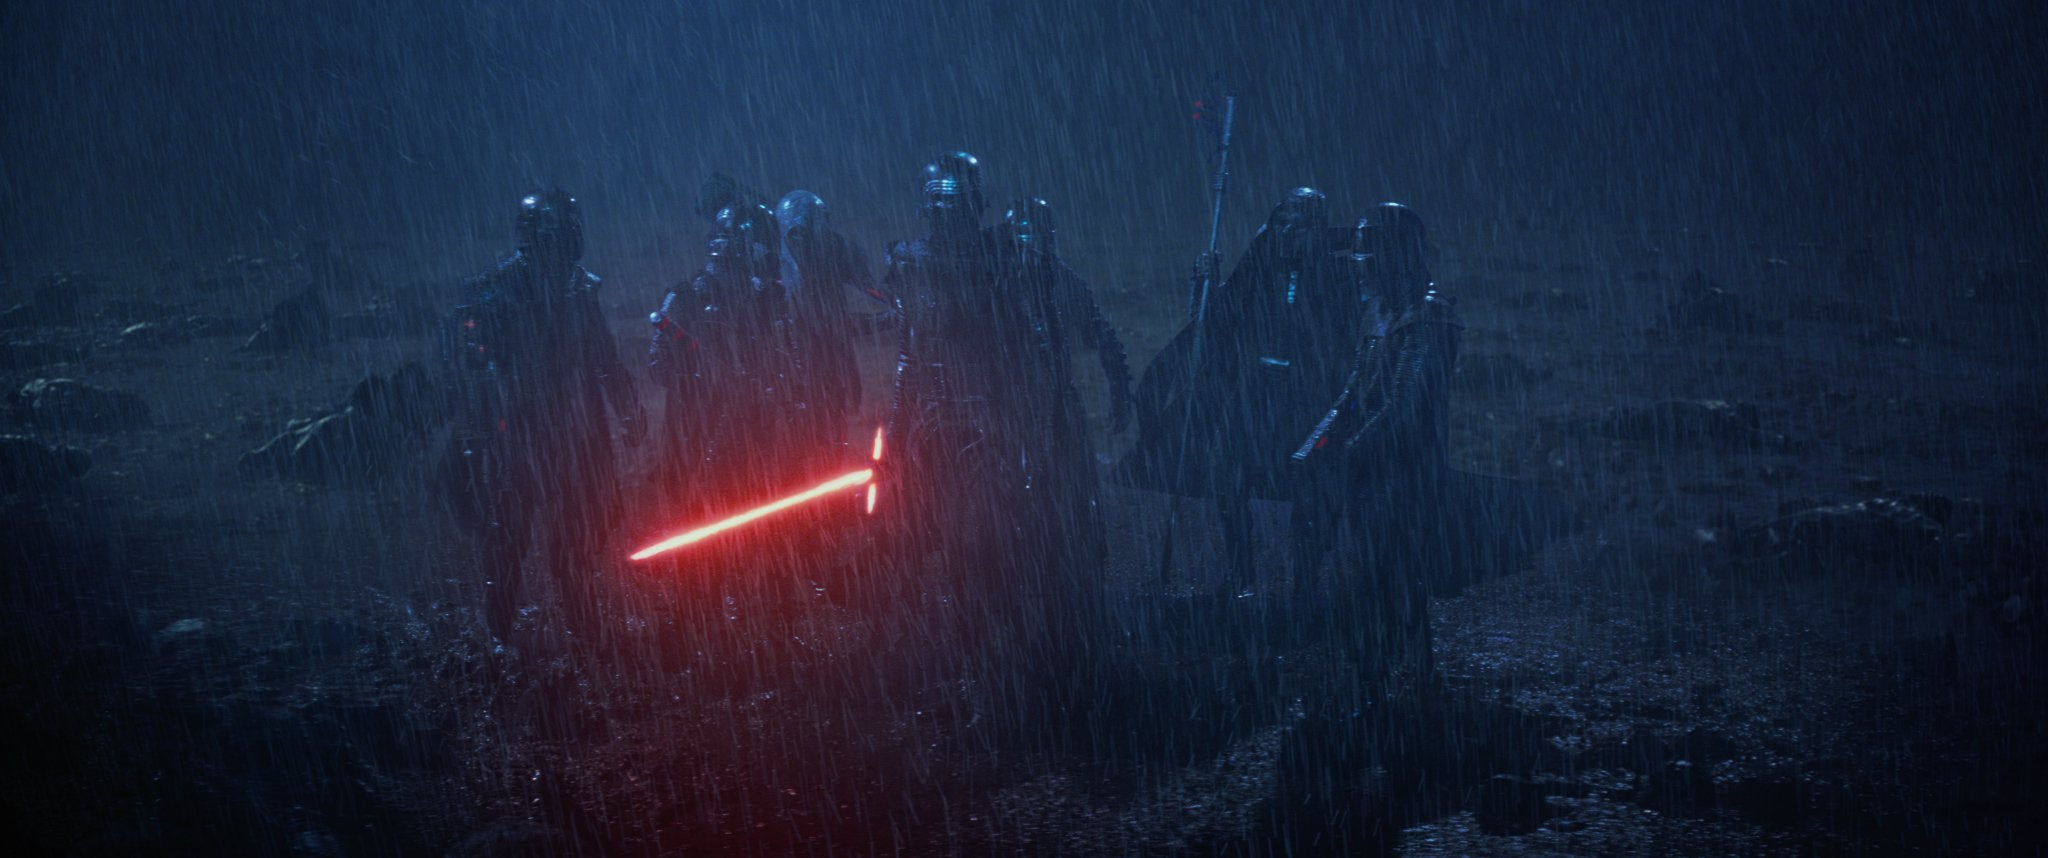 Eight Things We Want From Rian Johnson's Star Wars Episode VIII